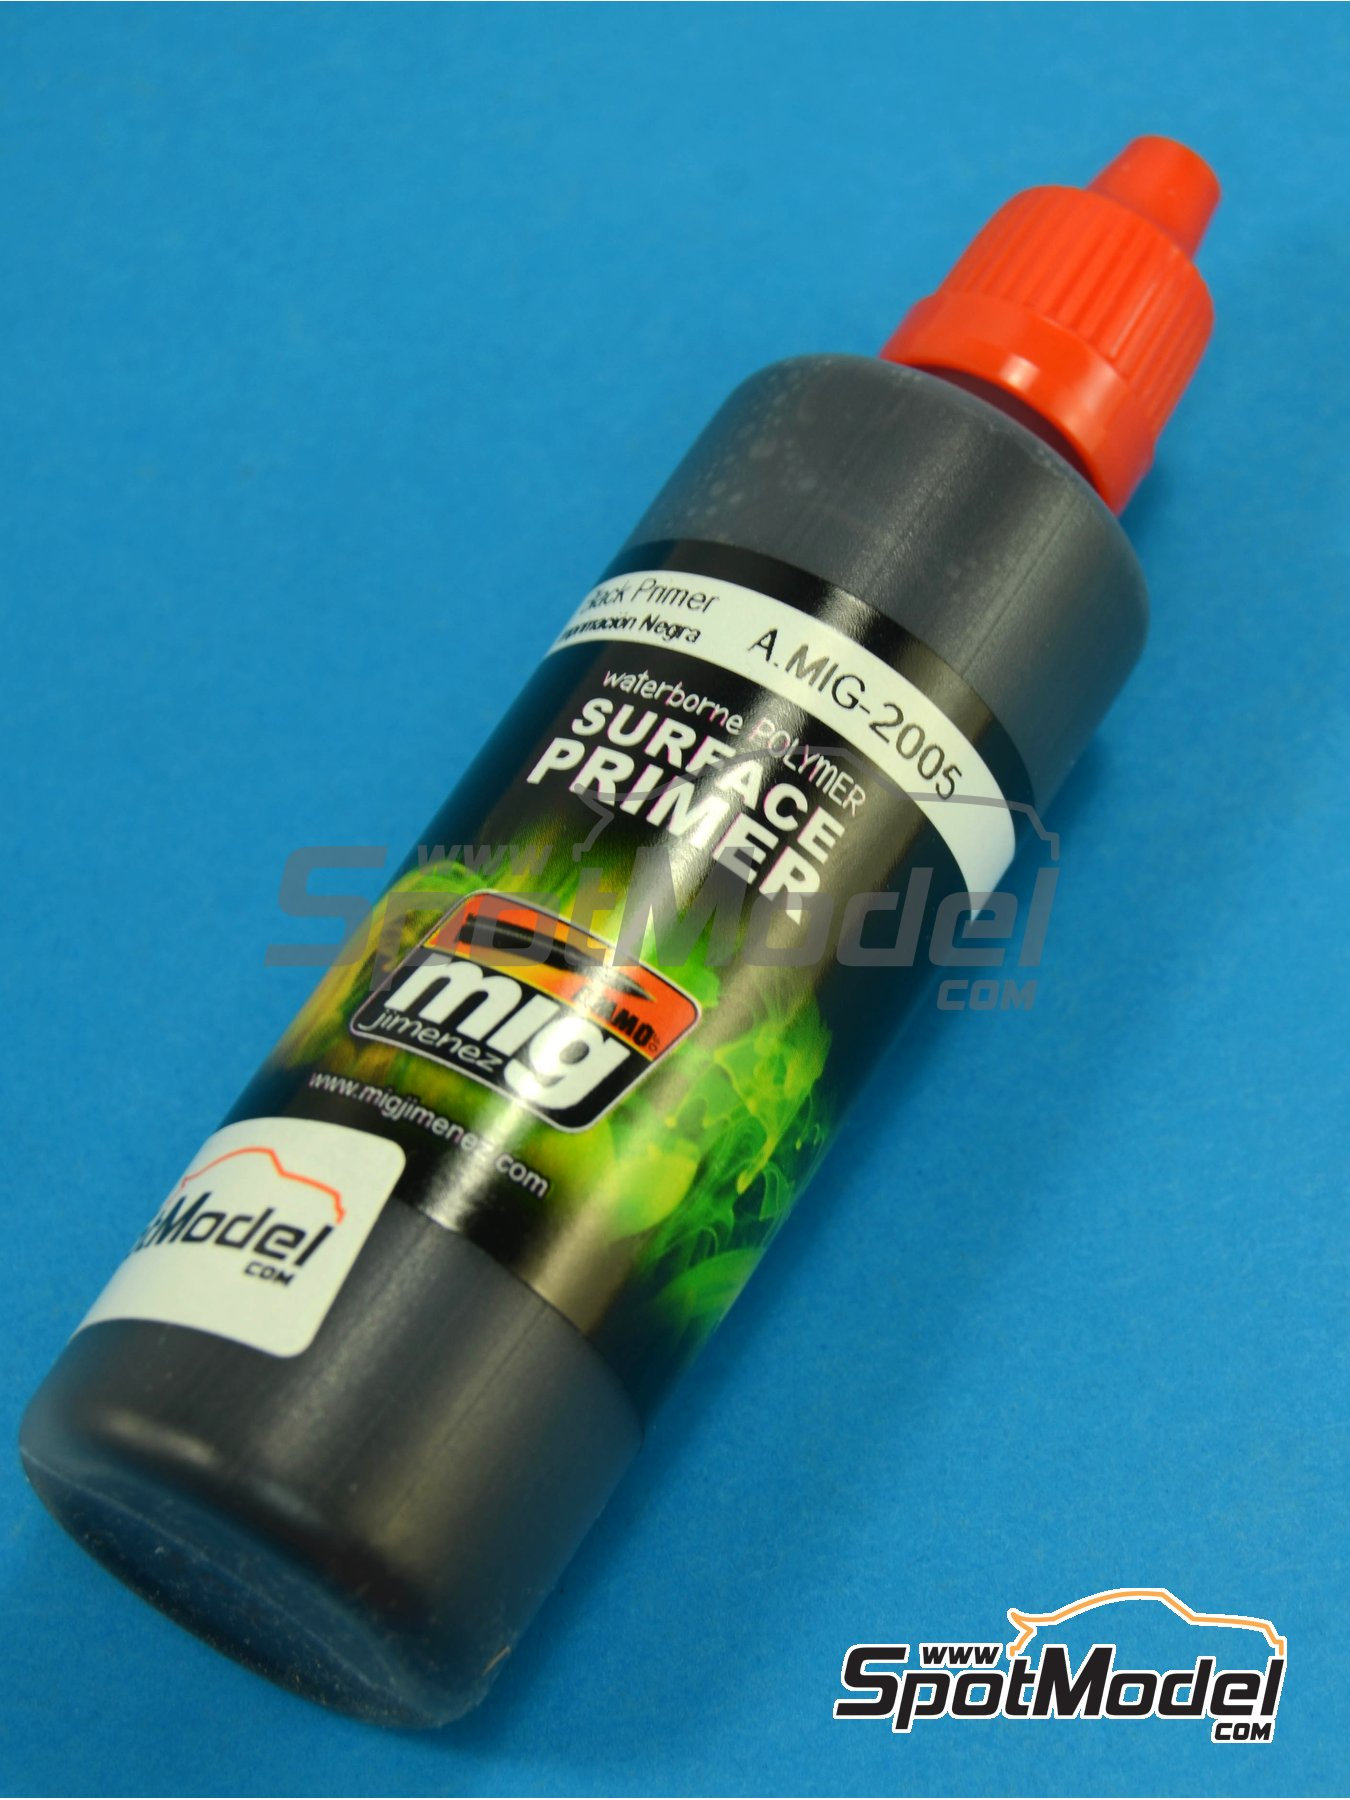 Black Primer - 1 x 60ml | Primer manufactured by AMMO of Mig Jimenez (ref. A.MIG-2005) image